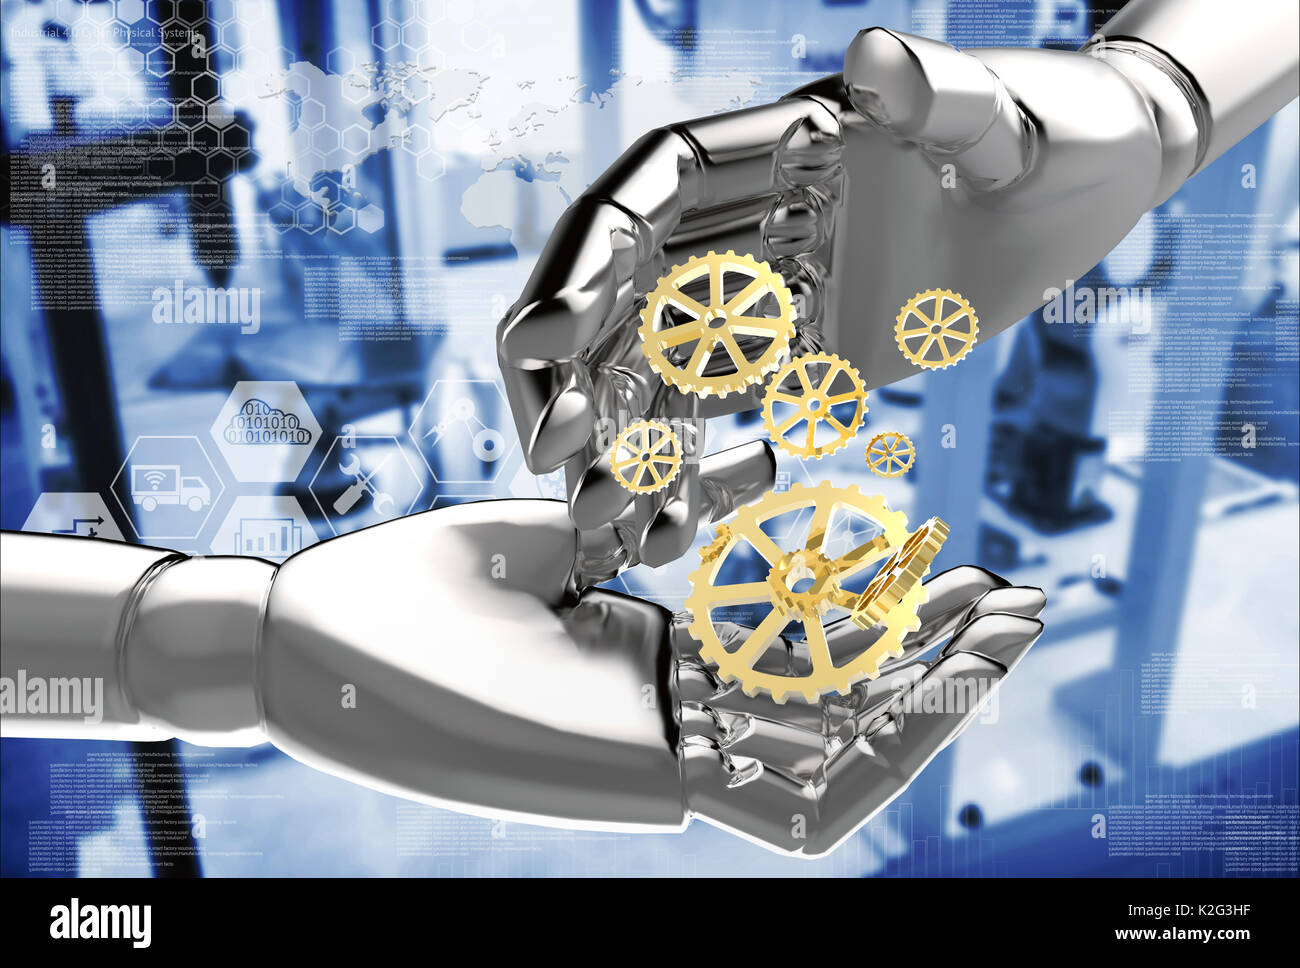 Robots , artificial intelligence disruptive and destroy human jobs. Industrial revolution , industry 4.0 technology concept 3d rendering robot hands a - Stock Image